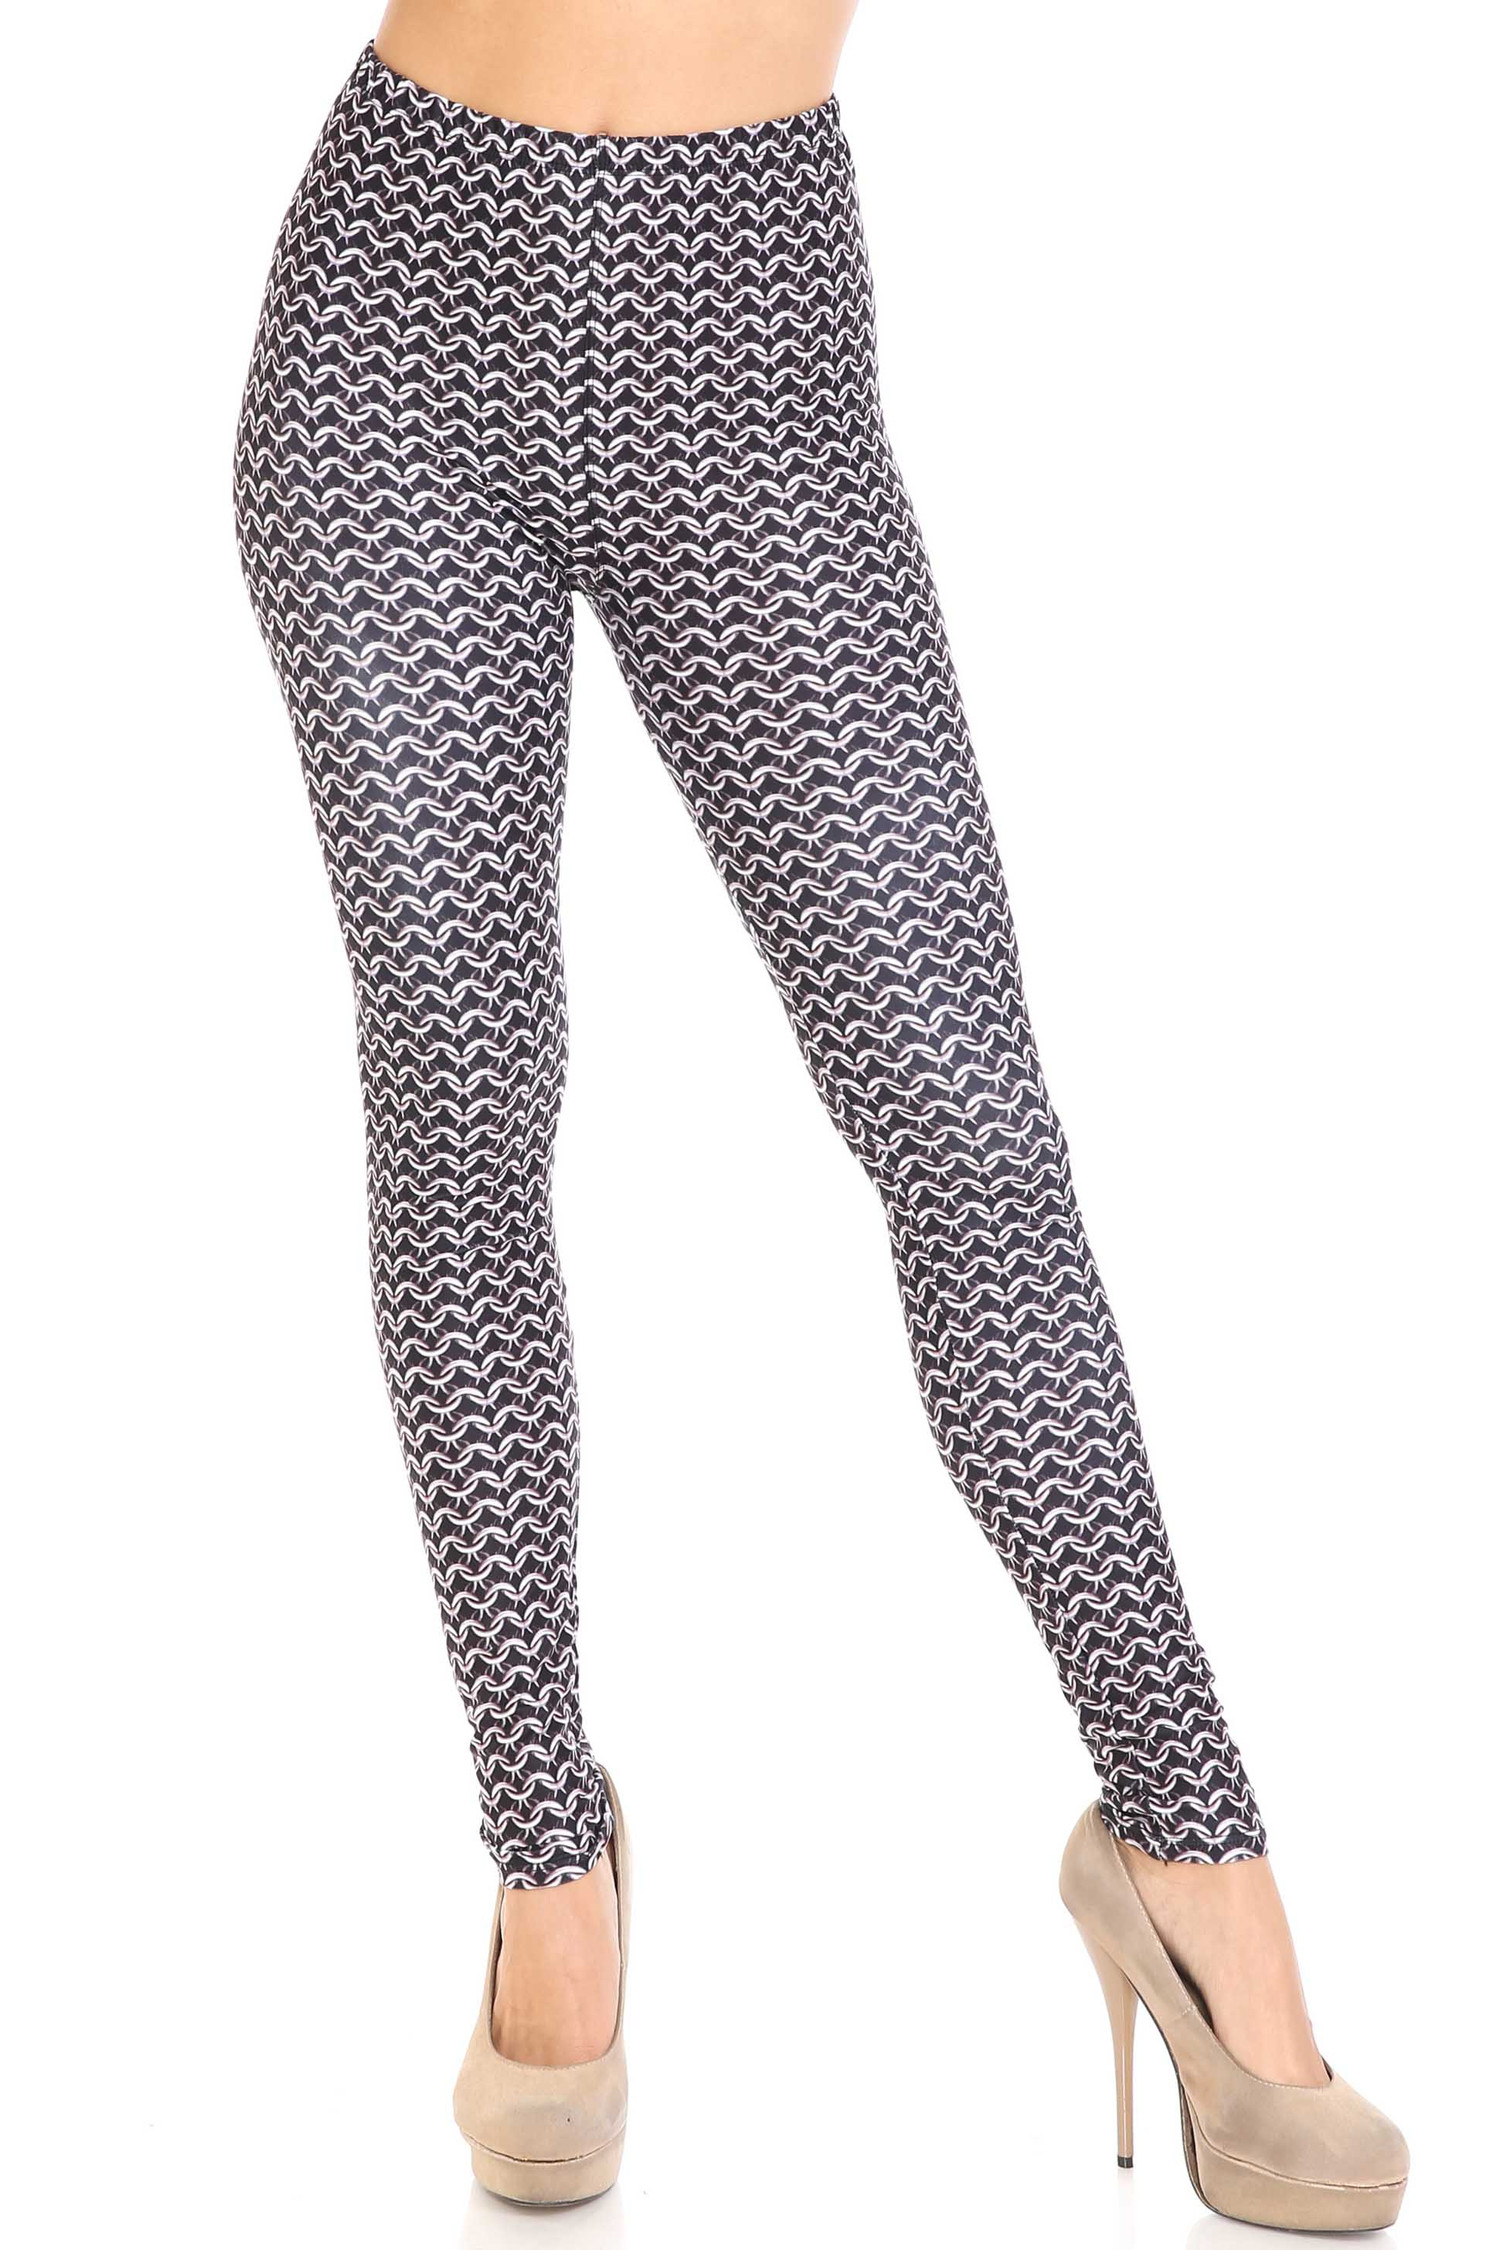 Creamy Soft Chainmail Leggings - USA Fashion™